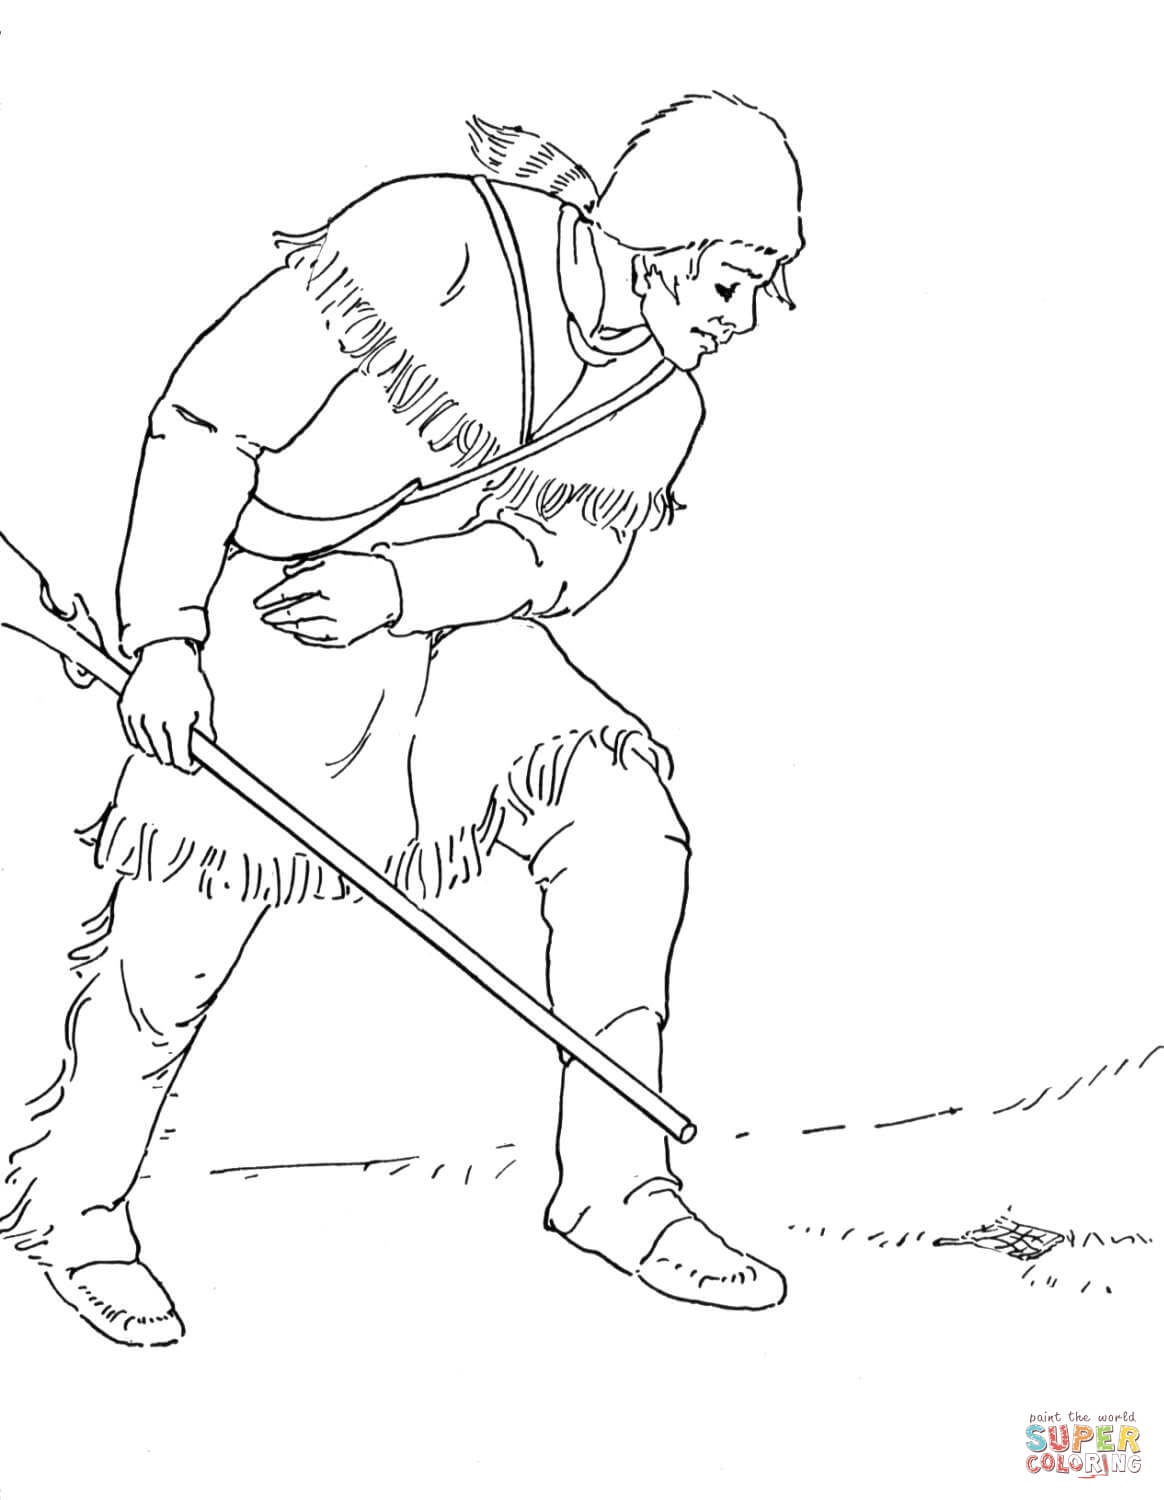 Daniel Boone Coloring Page